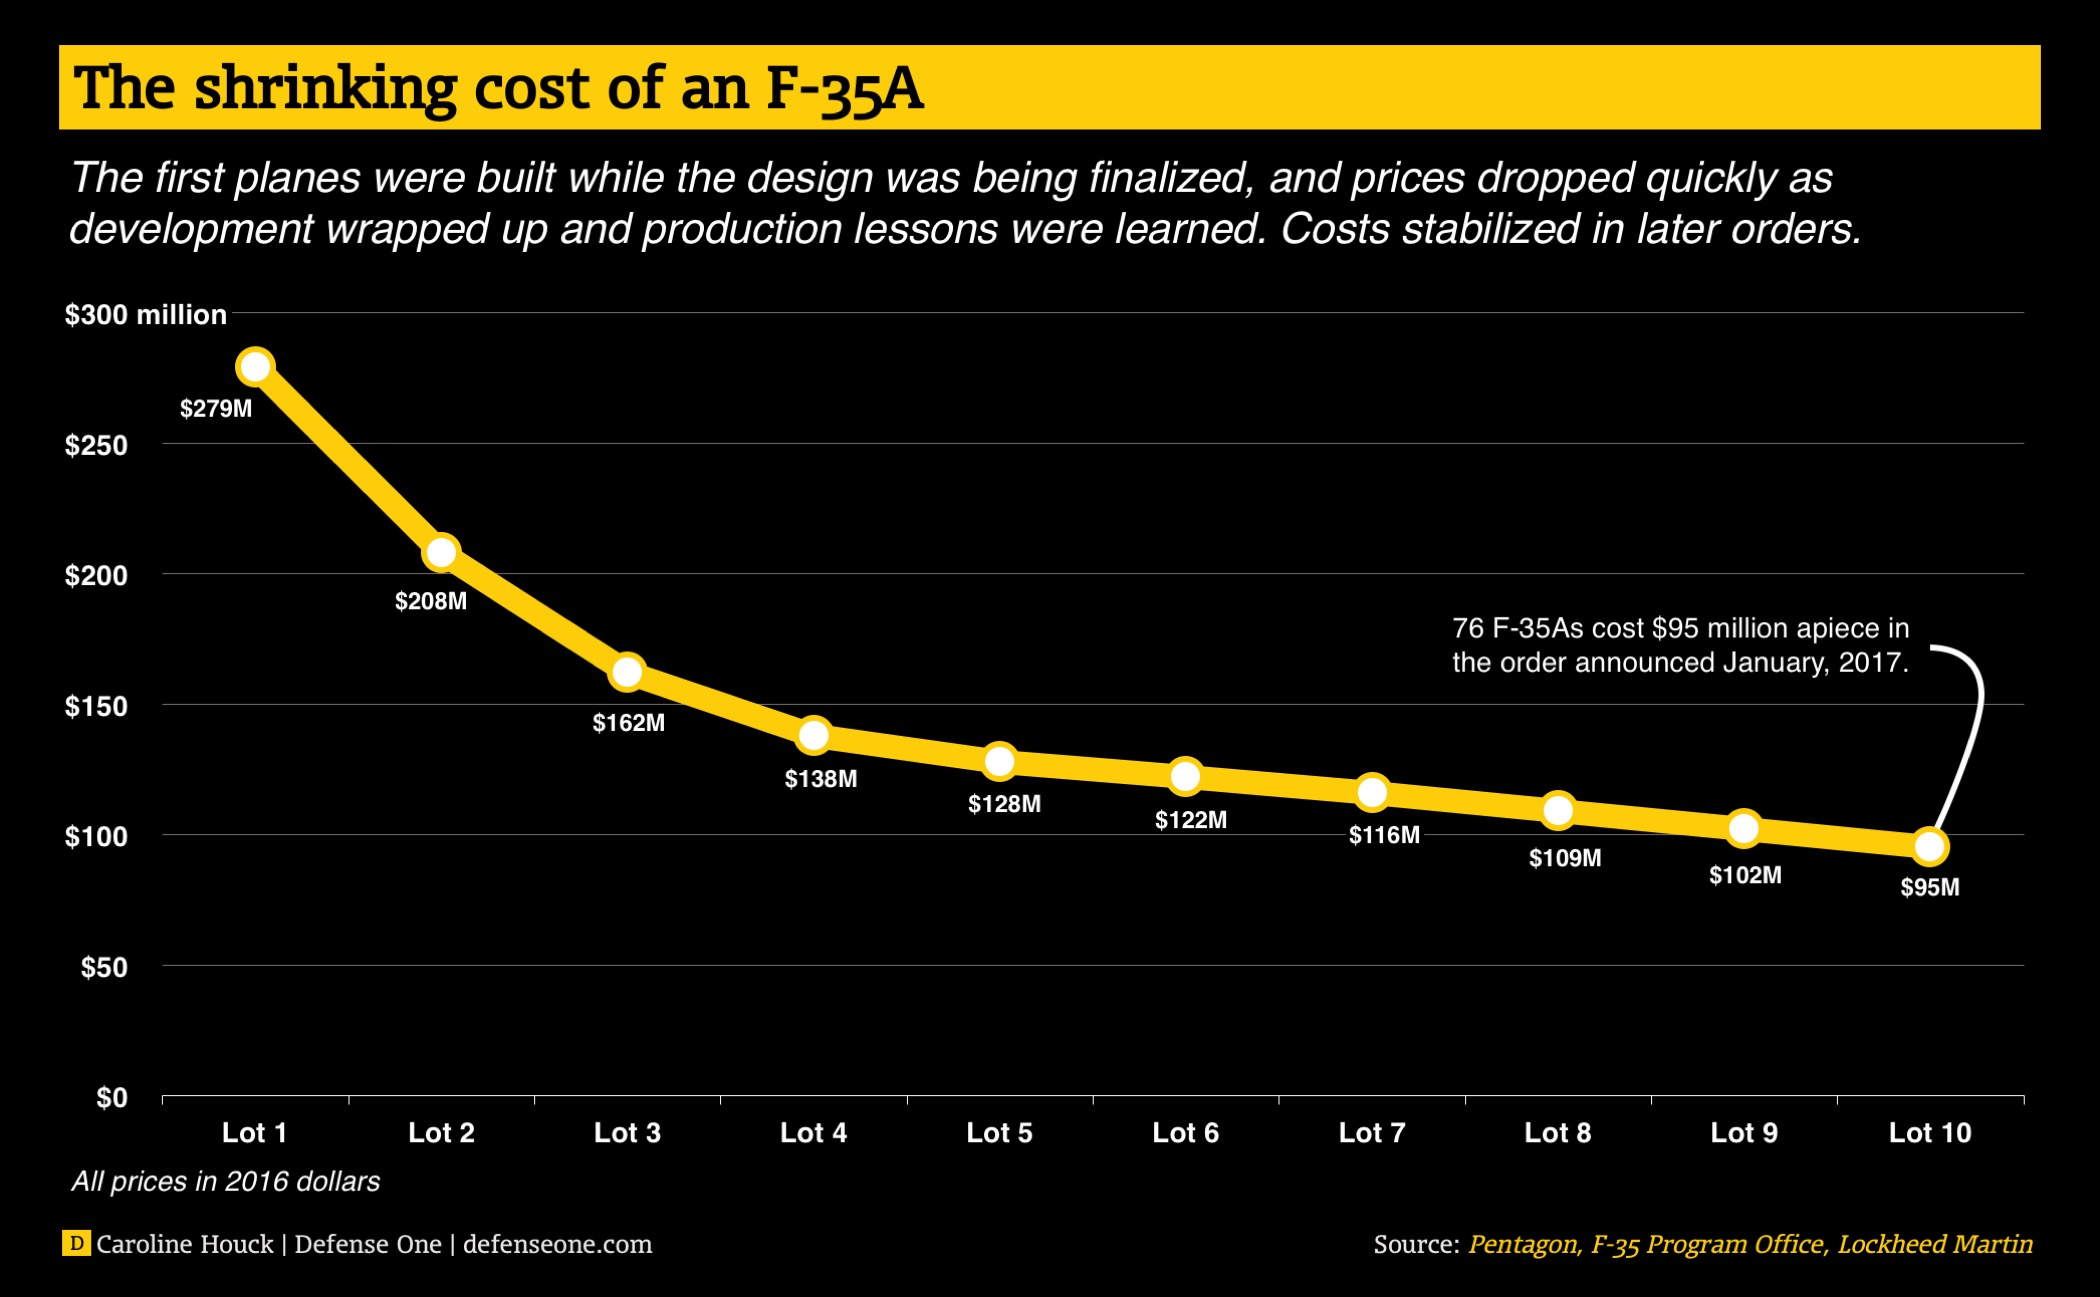 shrinking-cost-of-f-35a.jpg